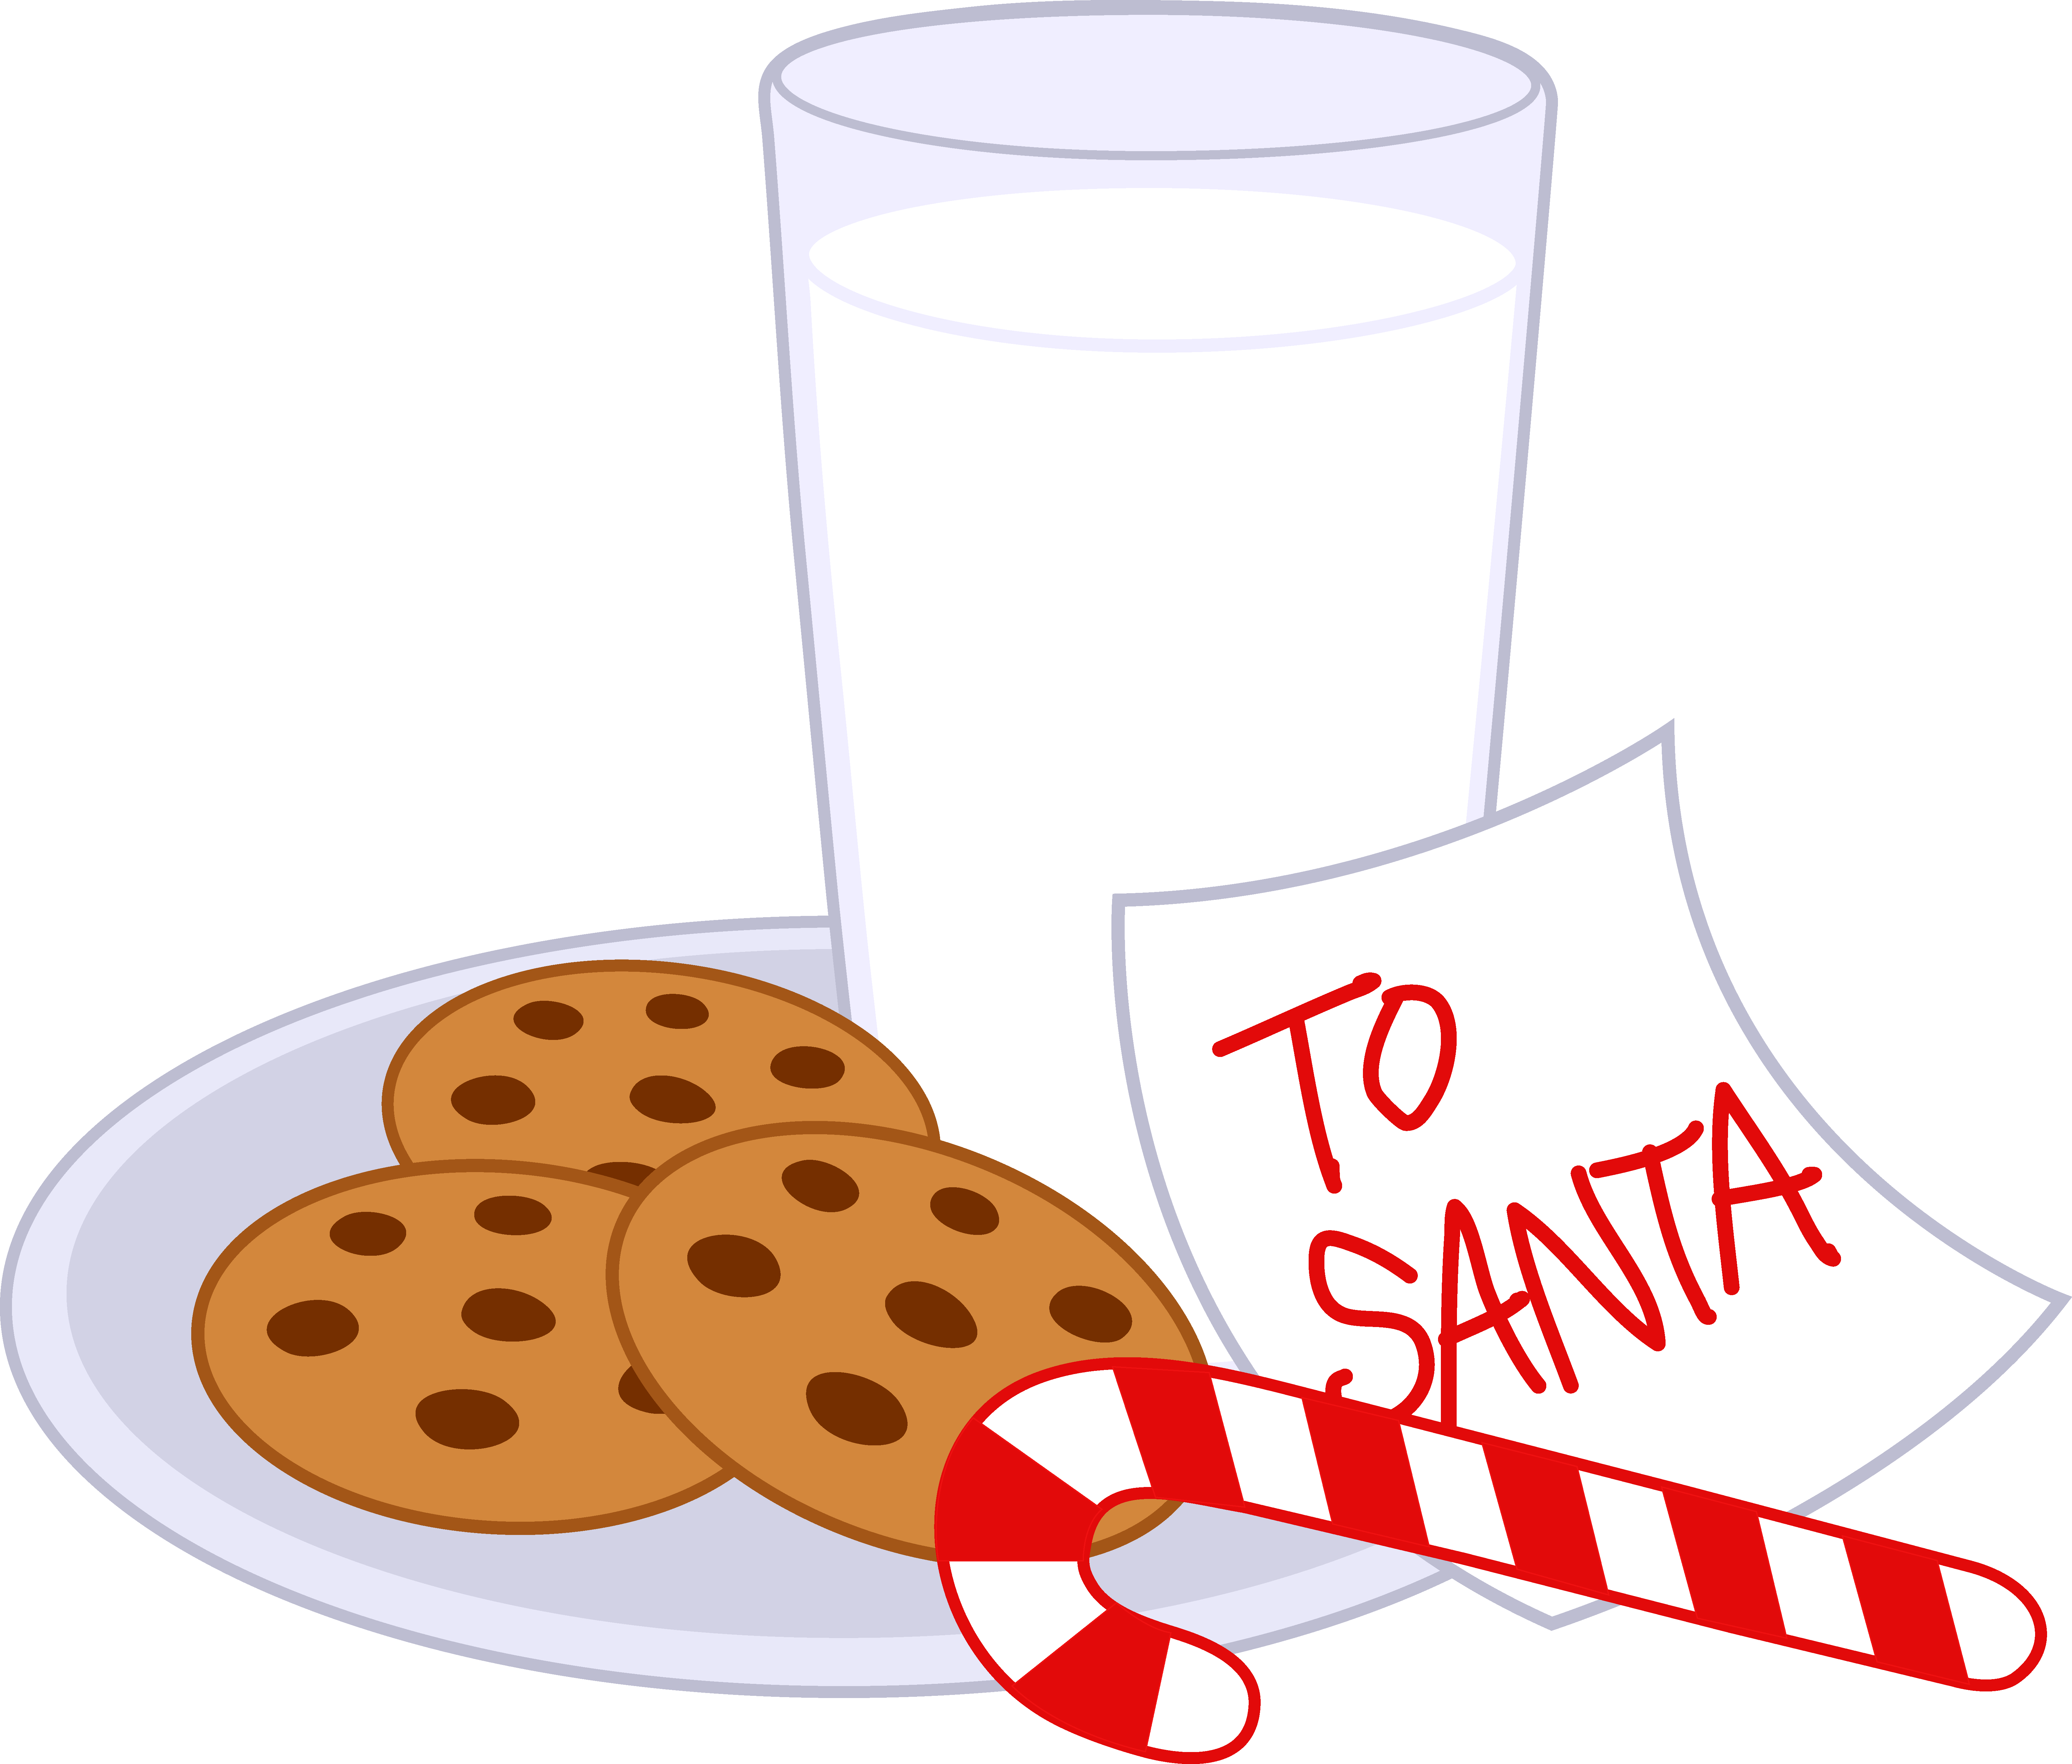 image library stock Dish clipart christmas. Cookies and milk for